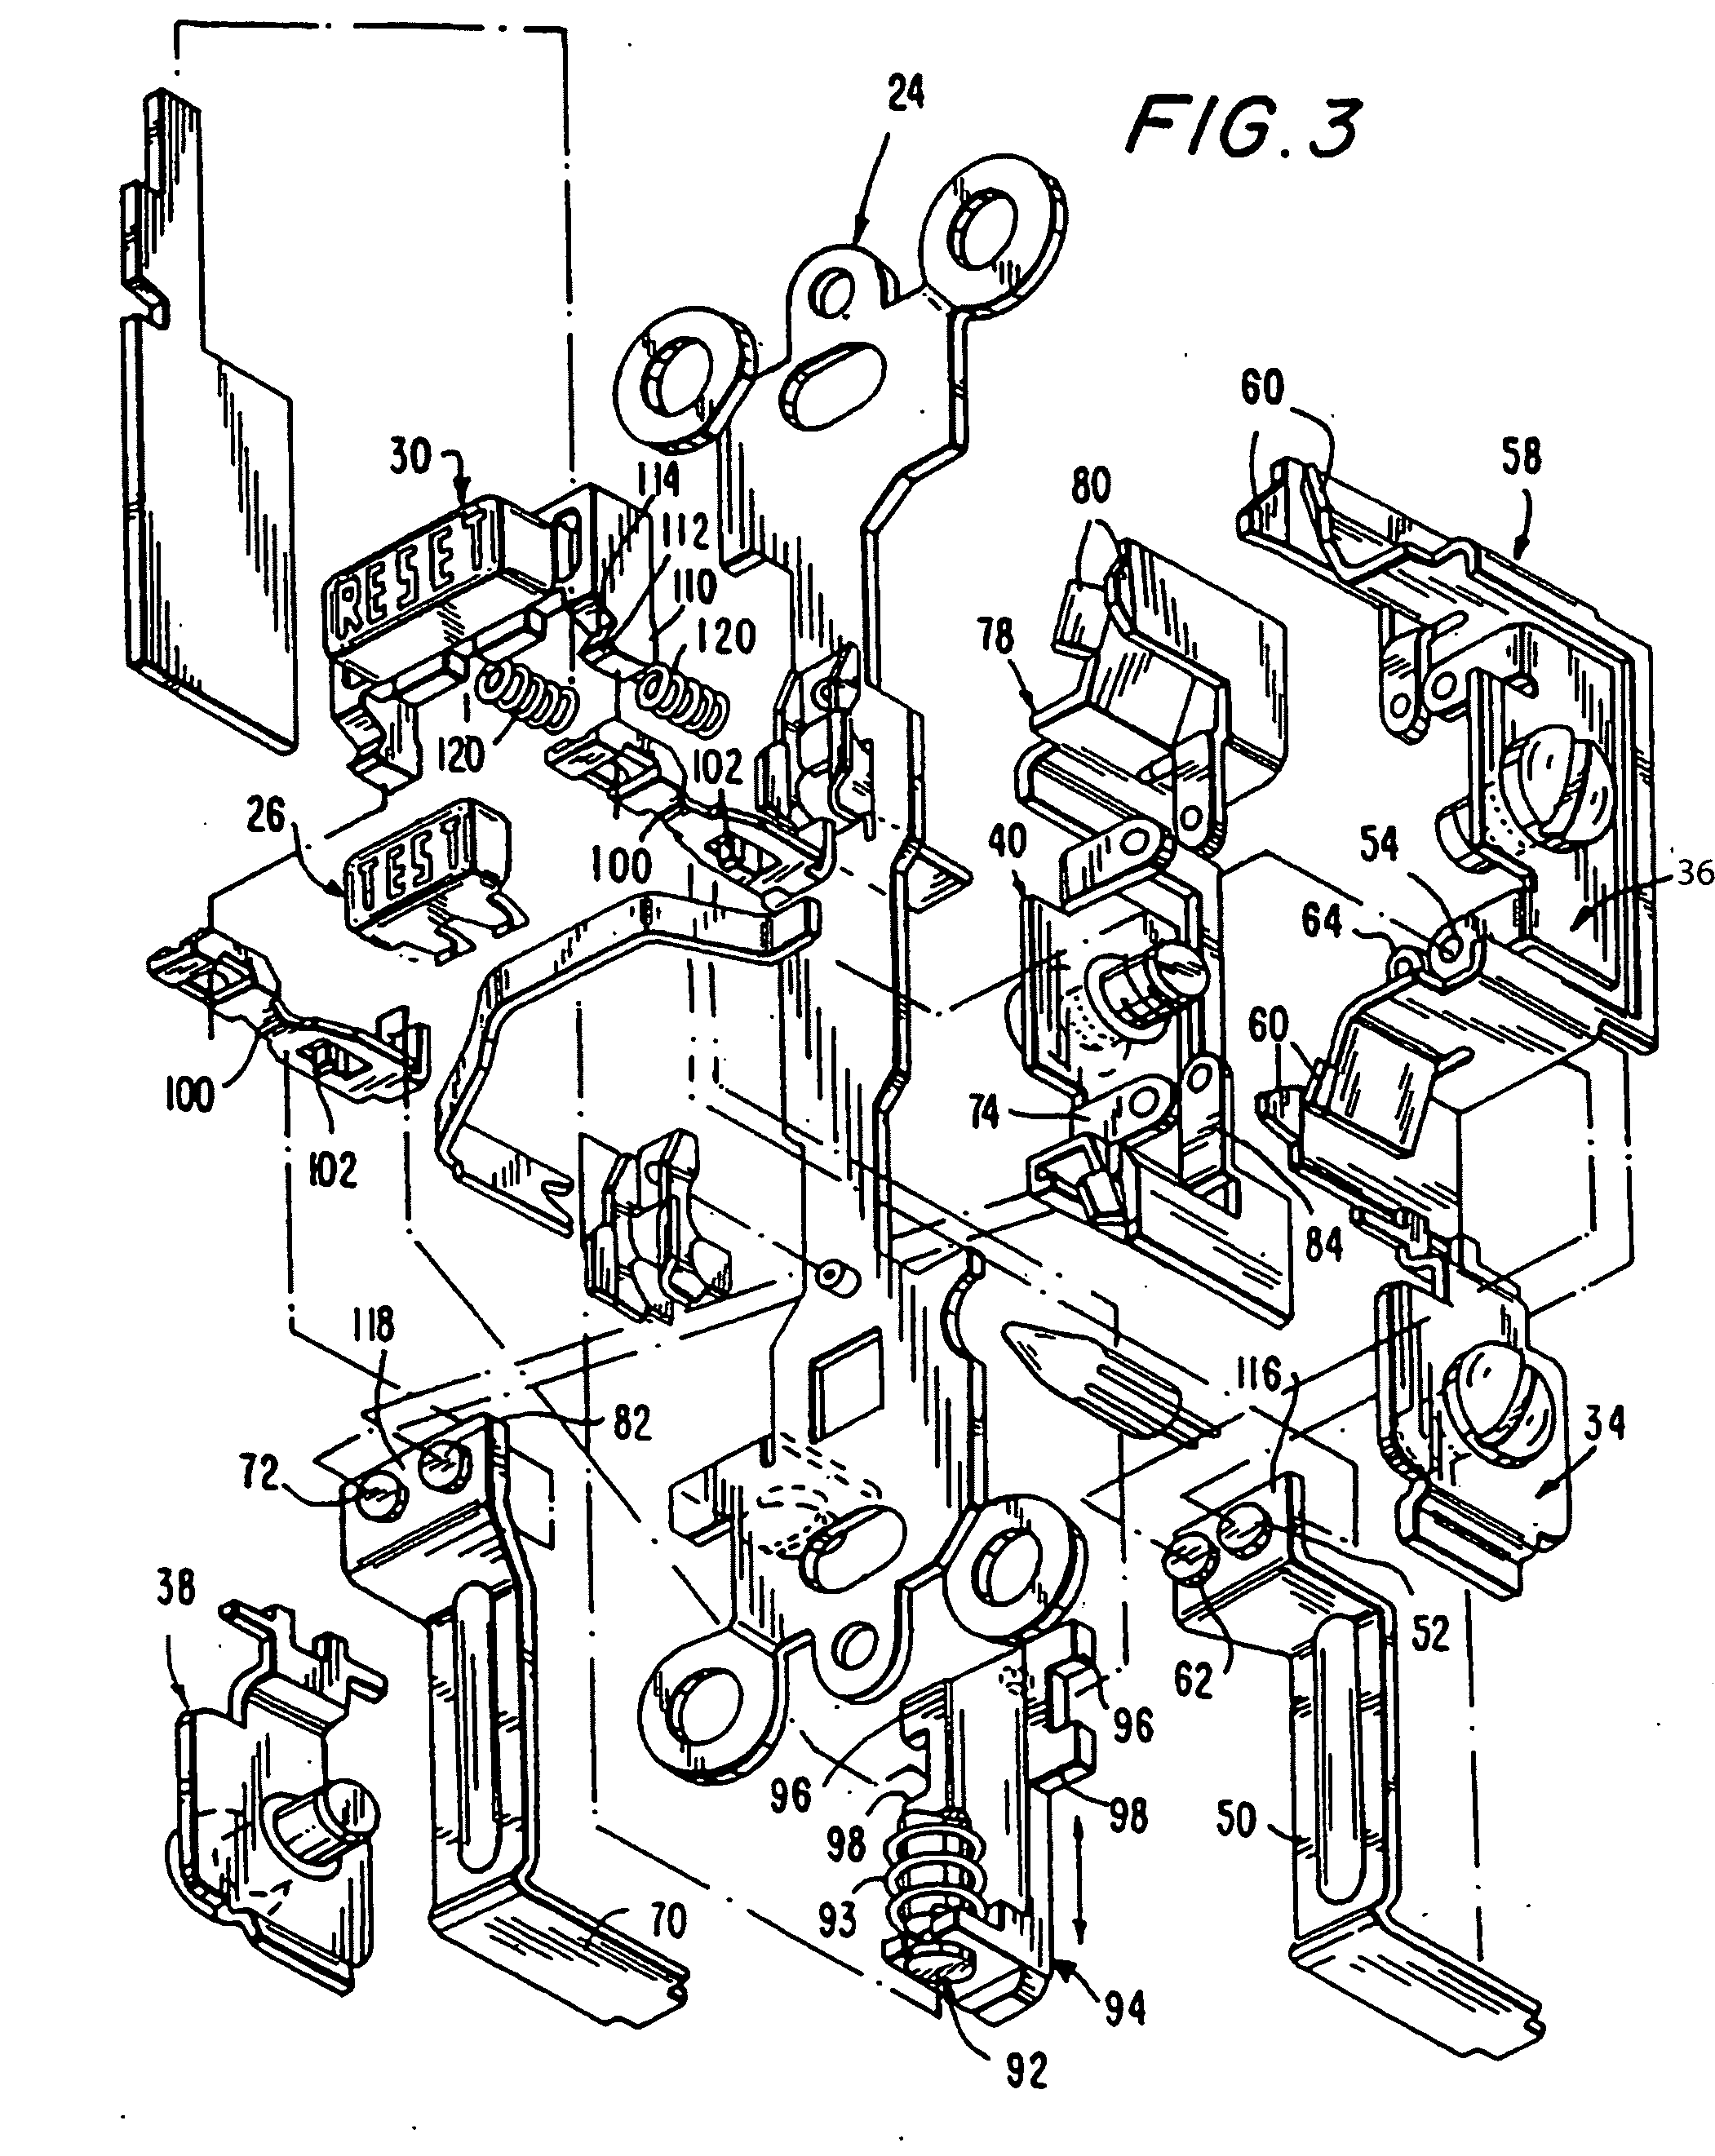 bathroom gfci wiring wiring diagram database Wall Outlet Wiring patent us20080186642 circuit interrupting device with reset bathroom electrical circuit bathroom gfci wiring